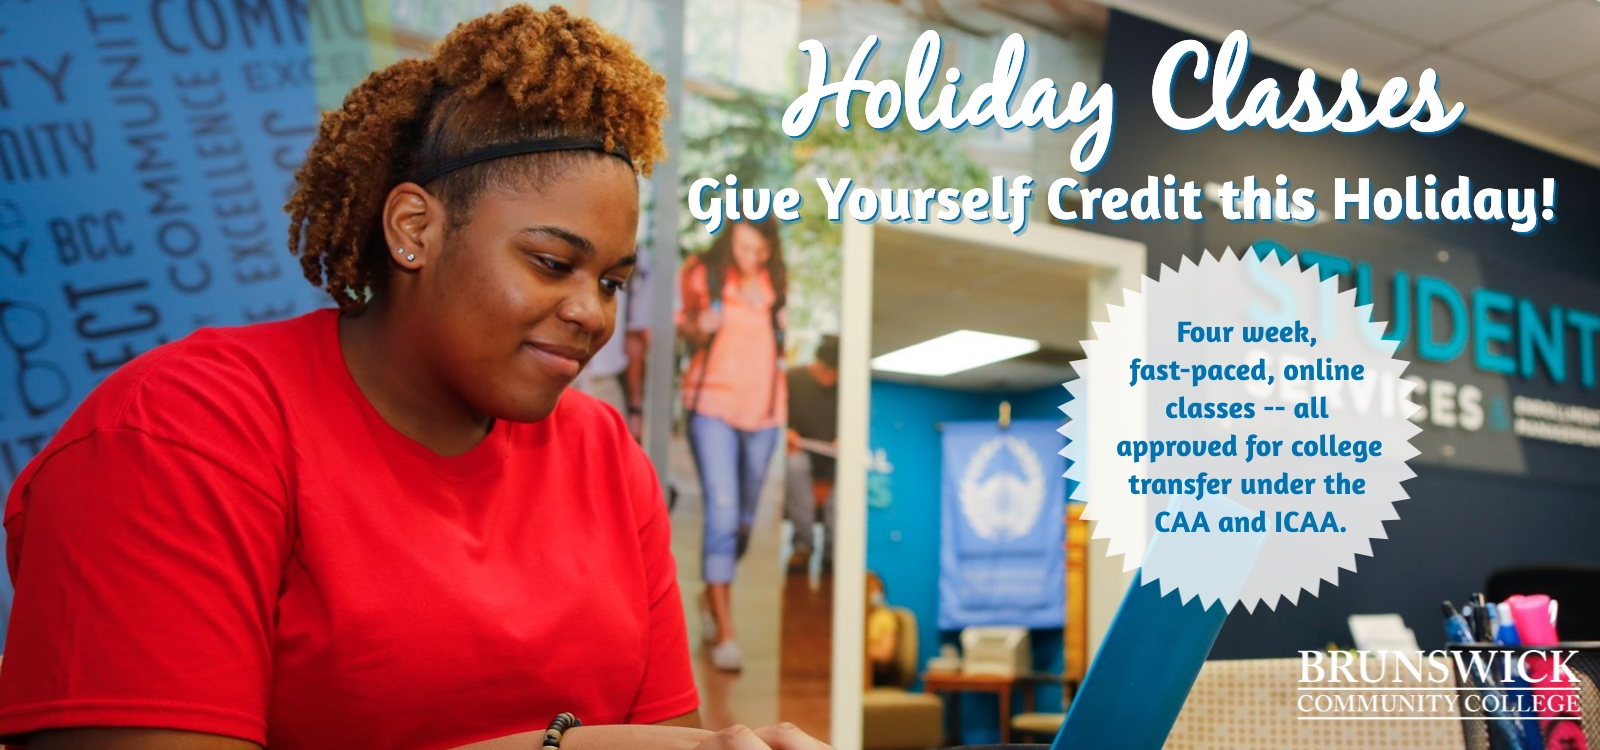 BCC student enrolling in holiday classes